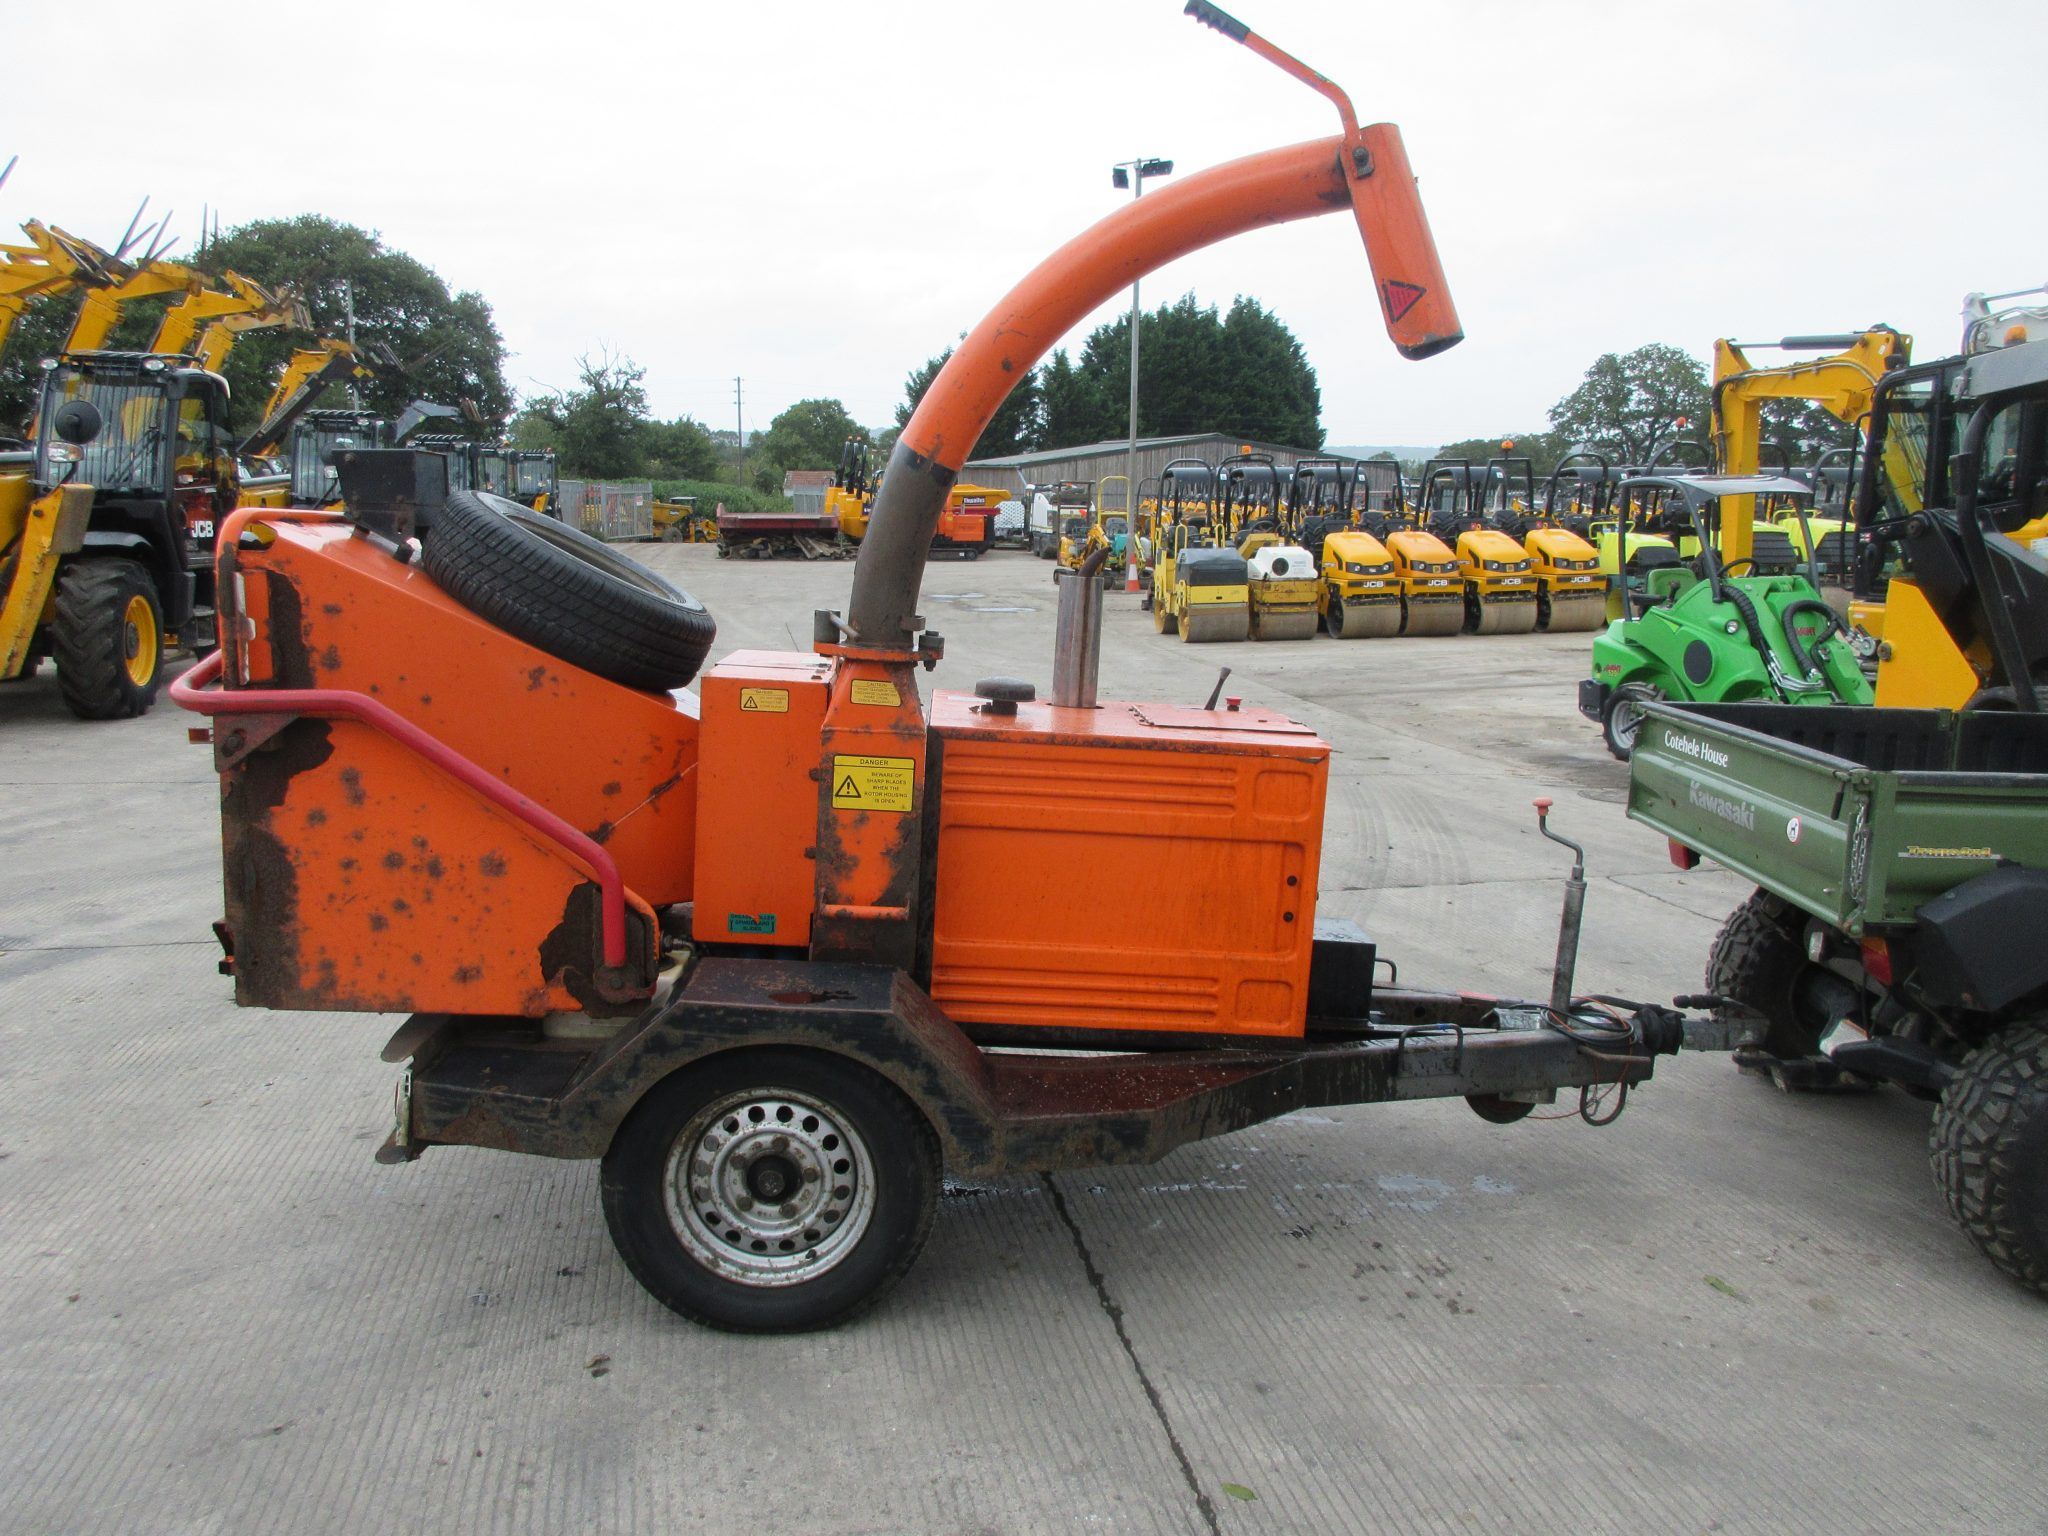 Woodchippers & Forestry